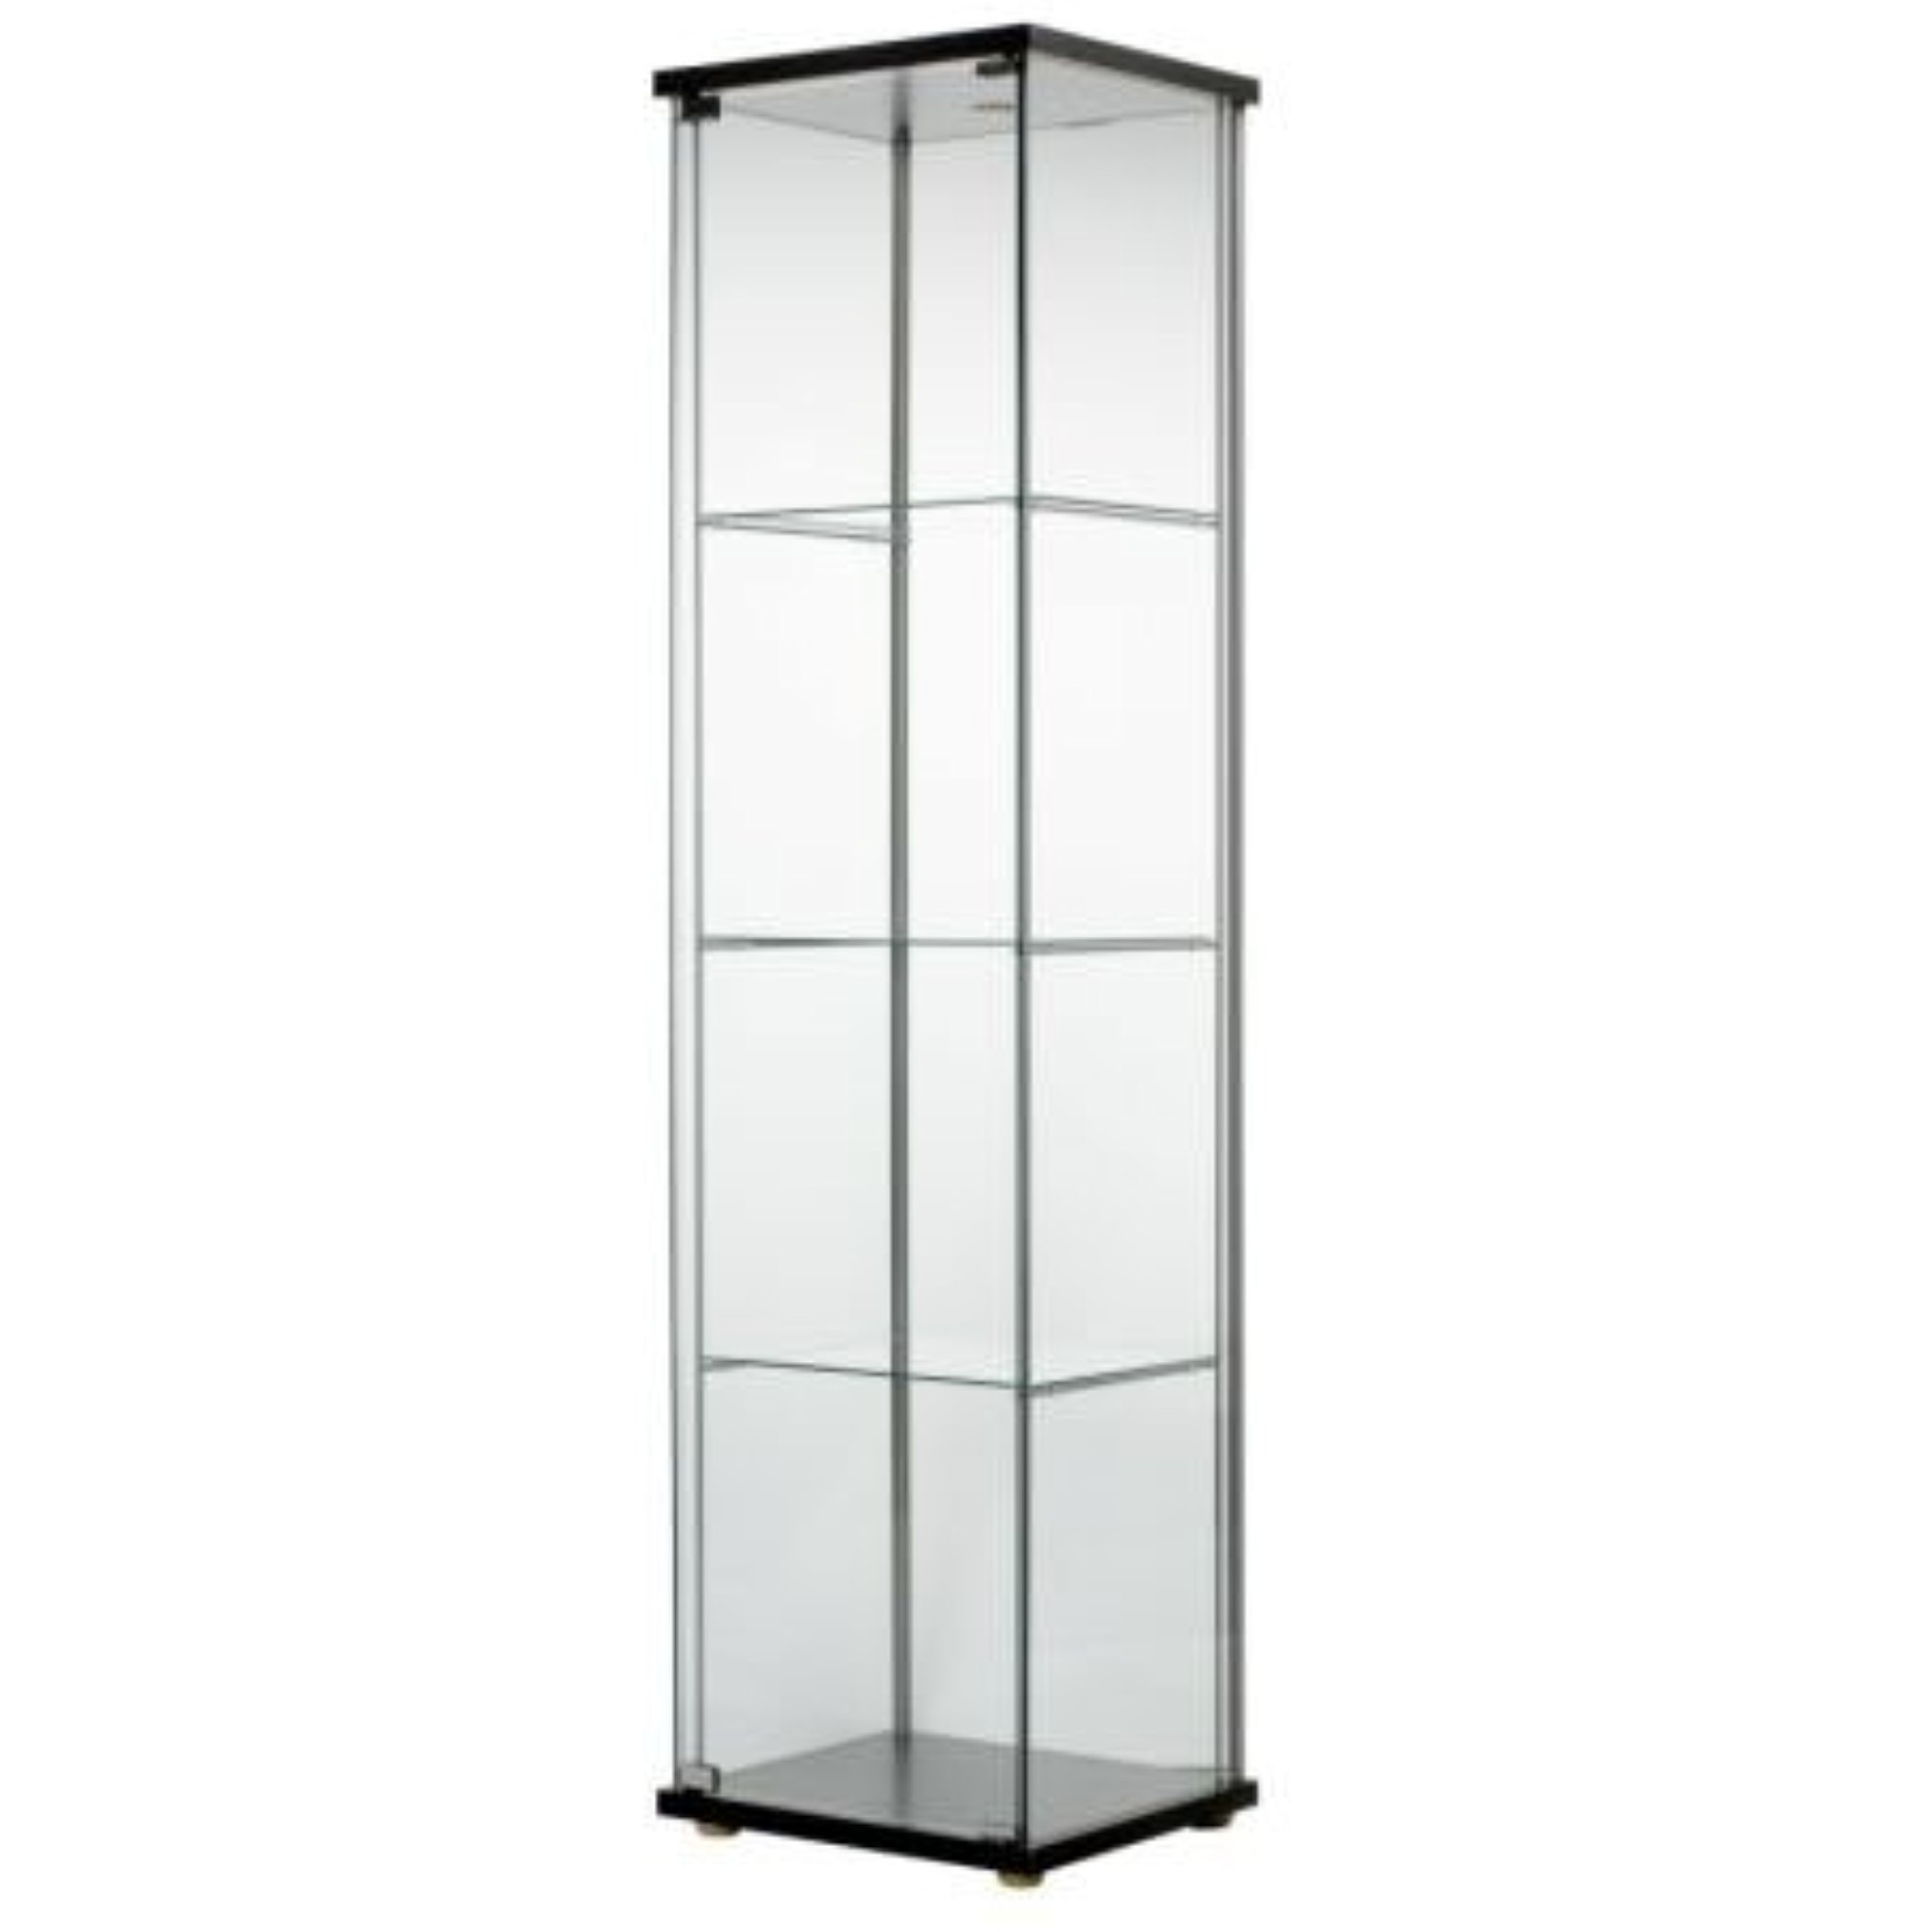 Angoliere Ikea Dustfree Curio Cabinets Google Search With Angoliere